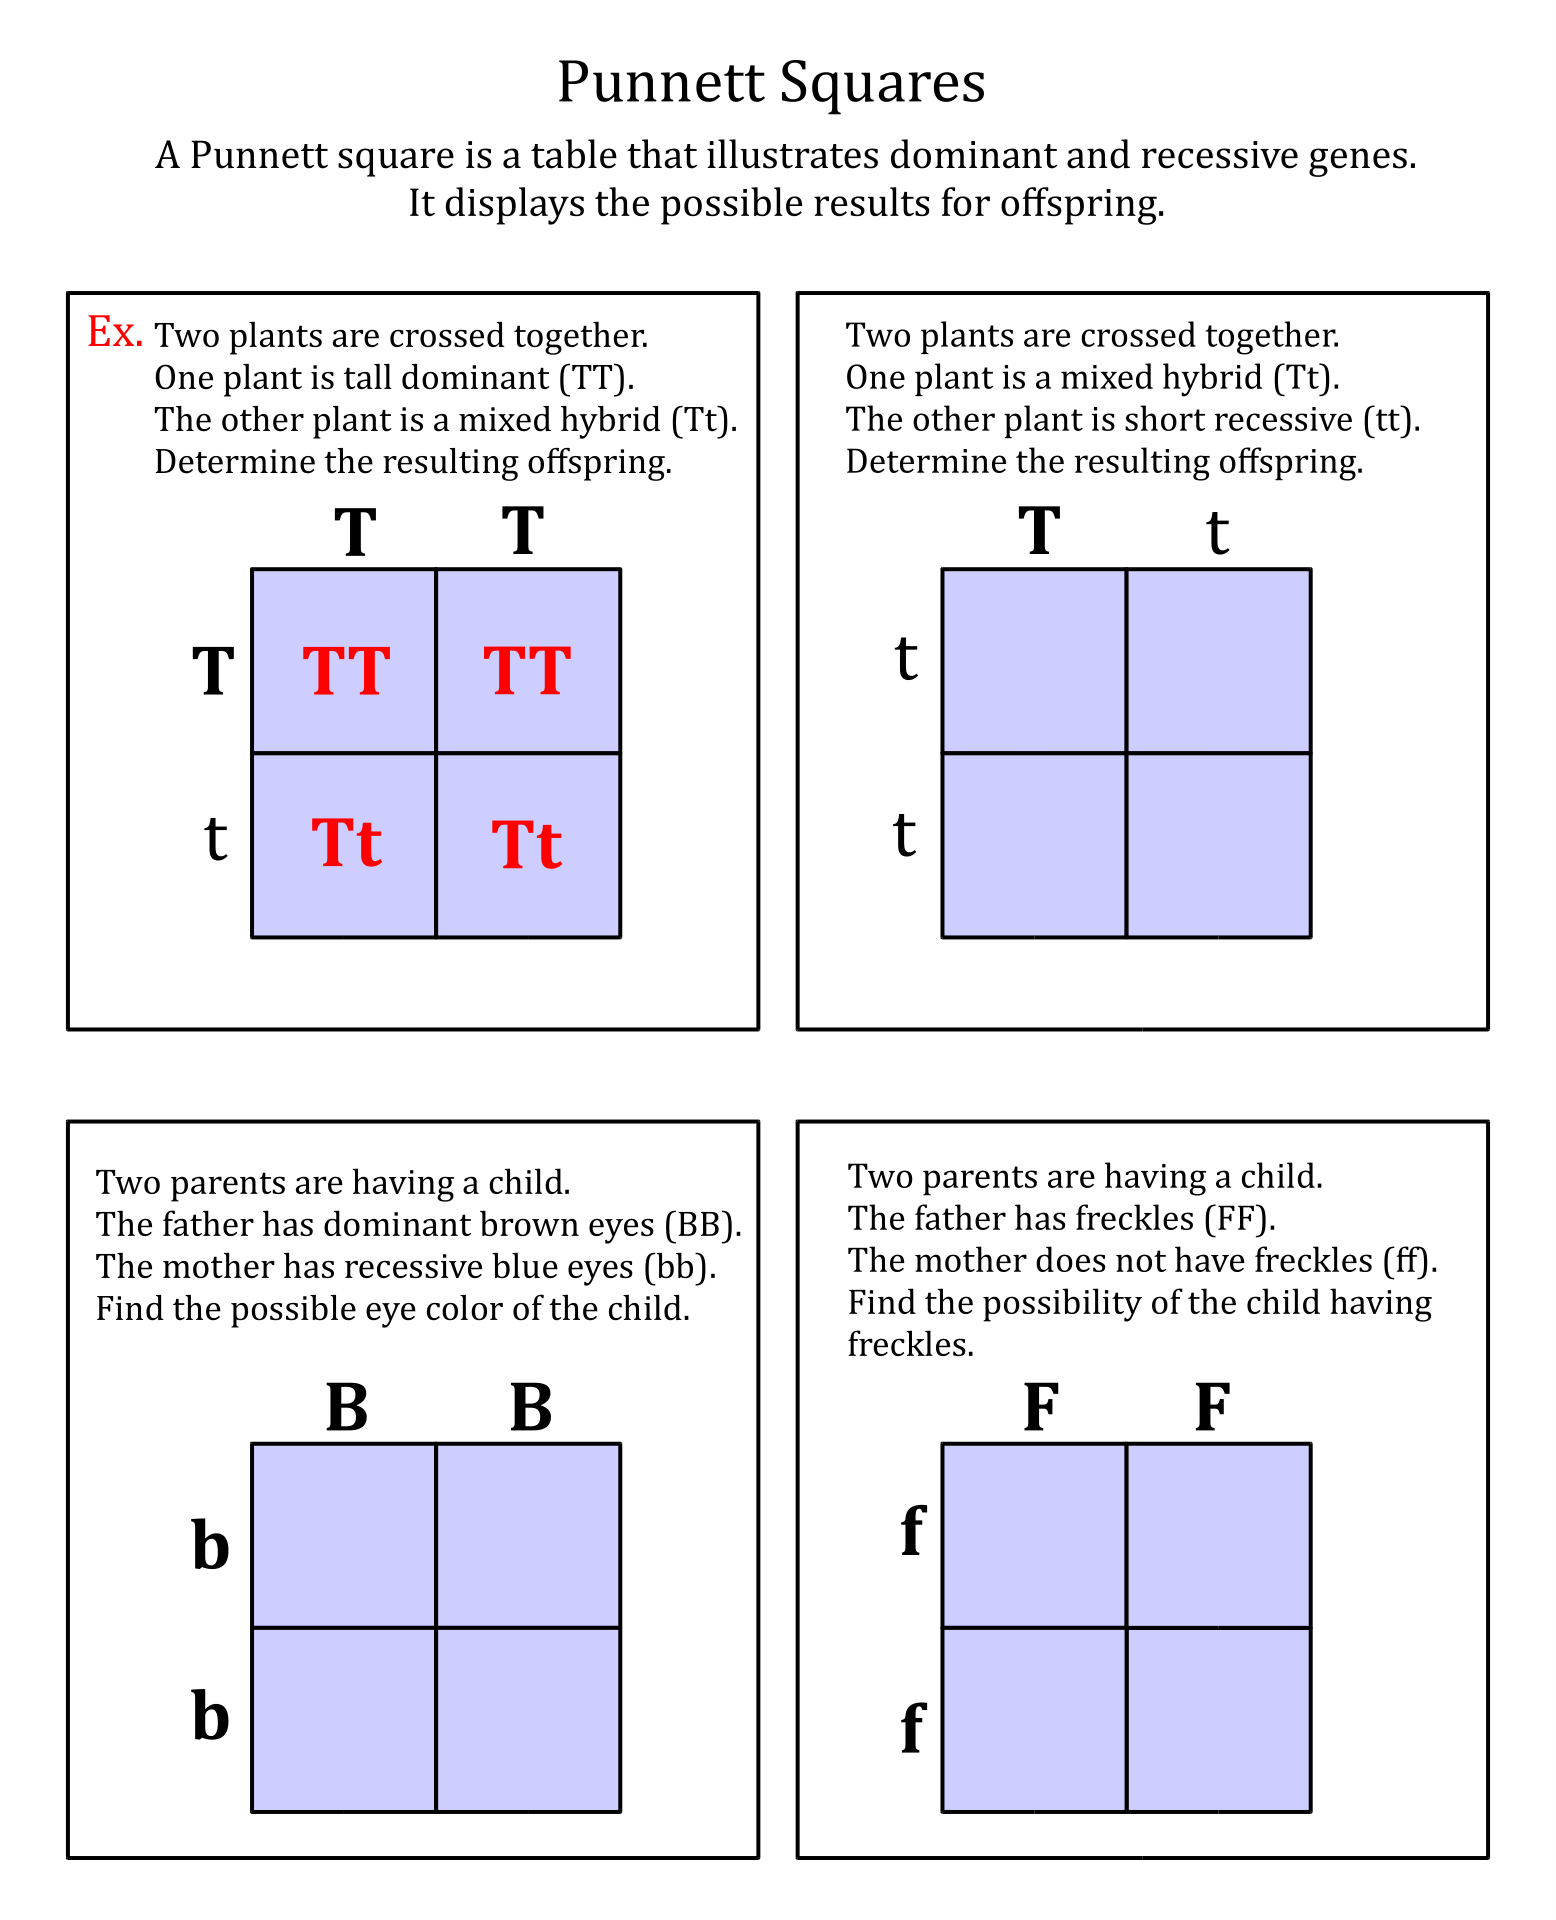 5 Best Images of Printable Punnett Square Worksheets - Punnett ...